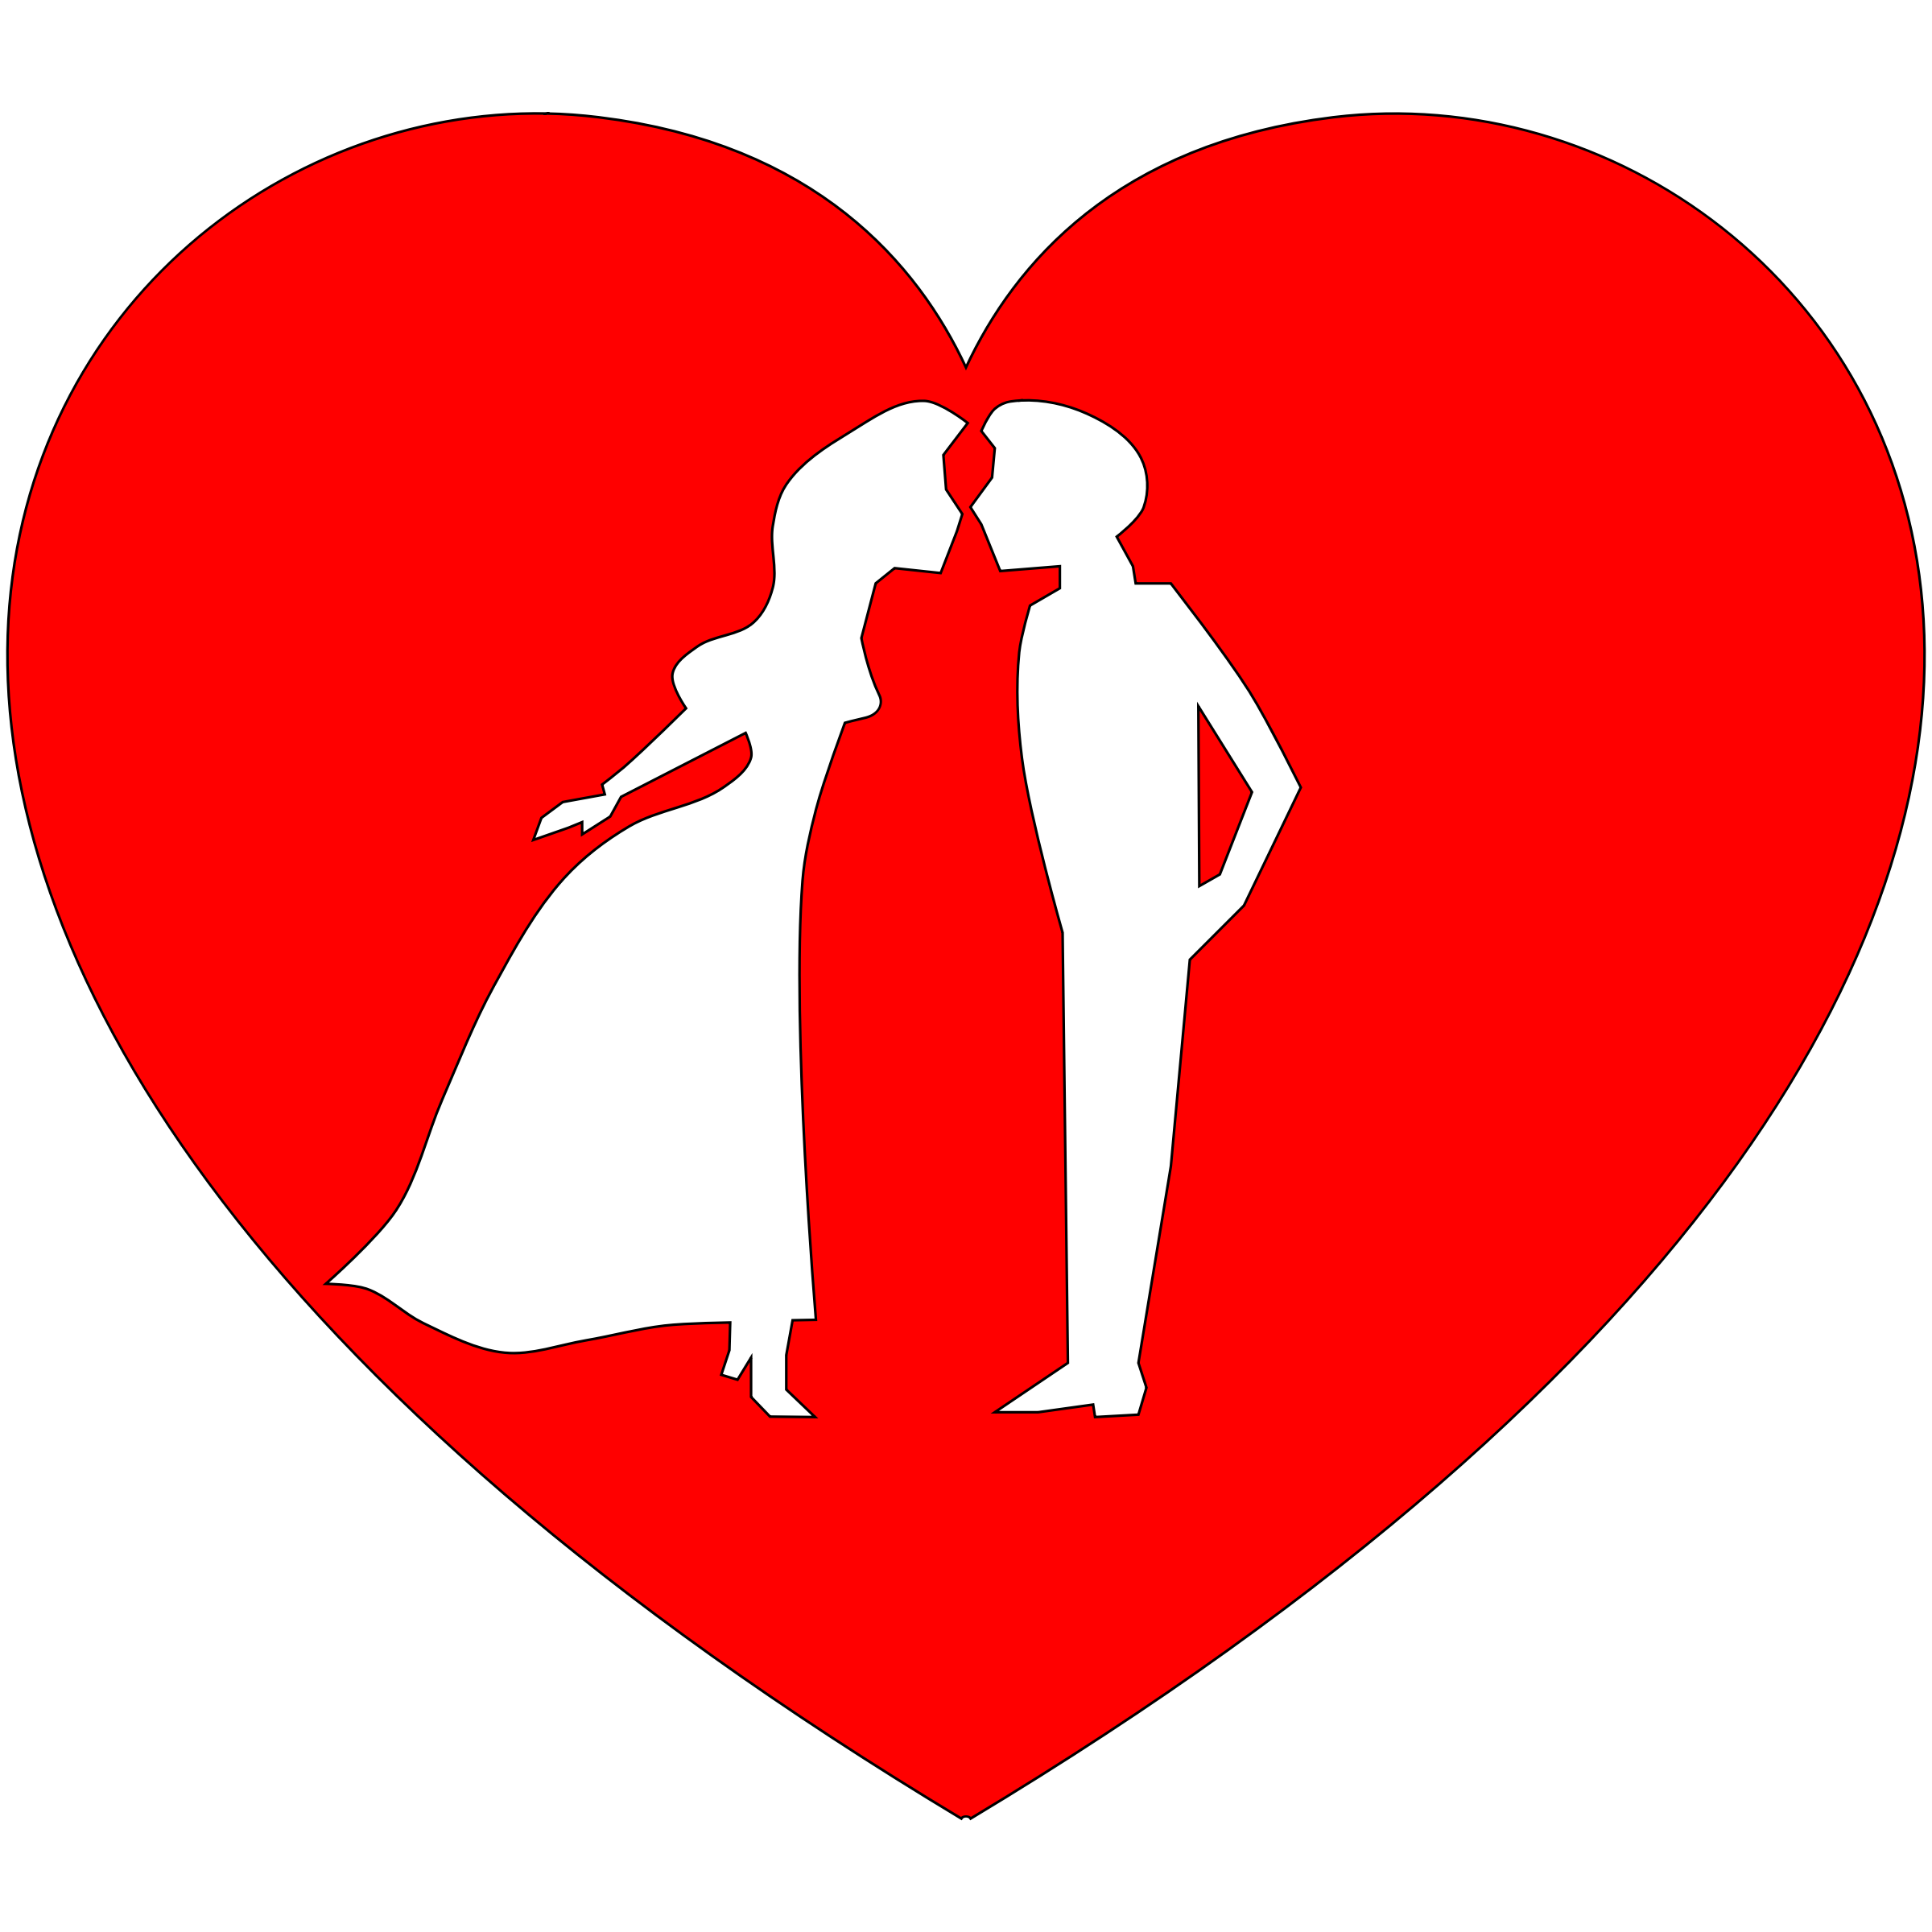 K.o.p.e.l. clipart true love Be Now the Live Evans